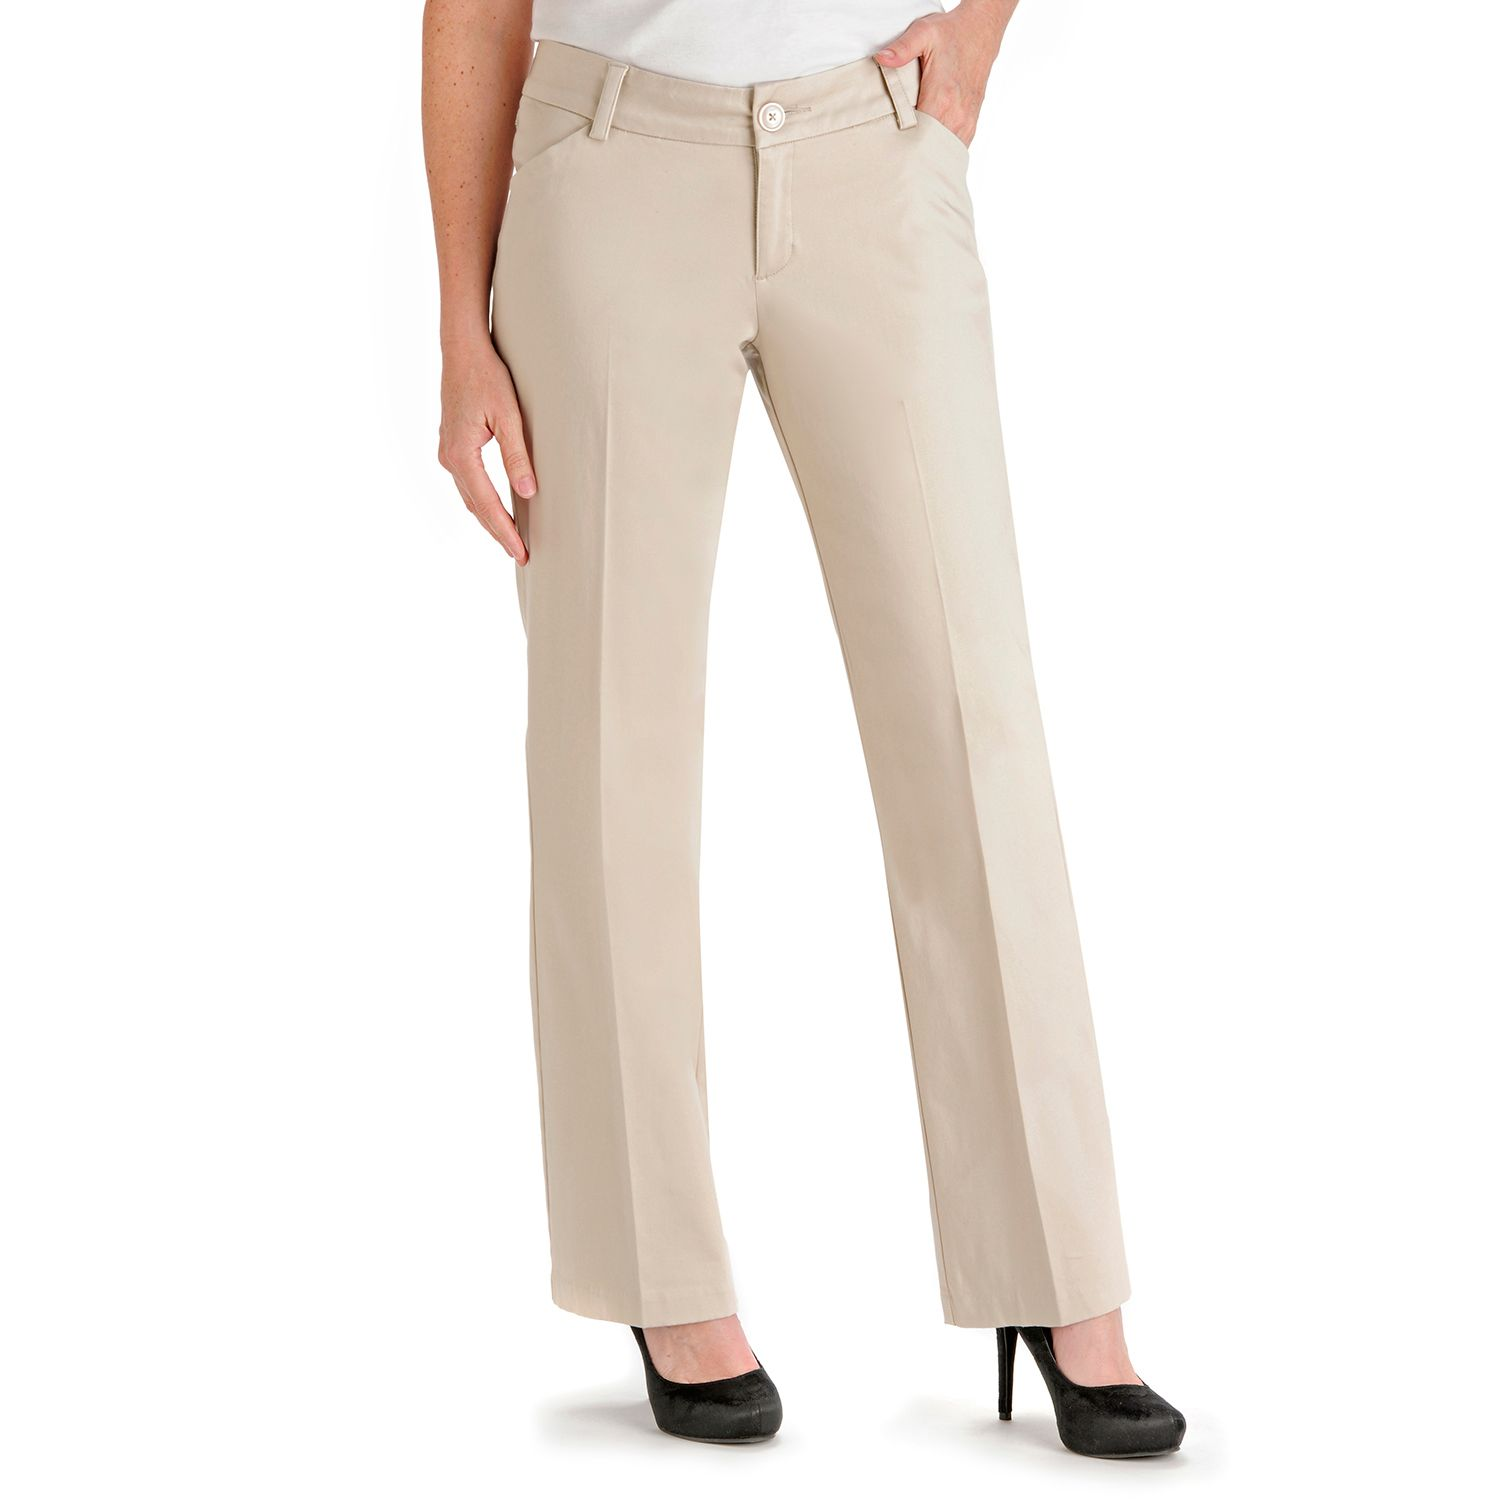 Tan Dress Pants For Women